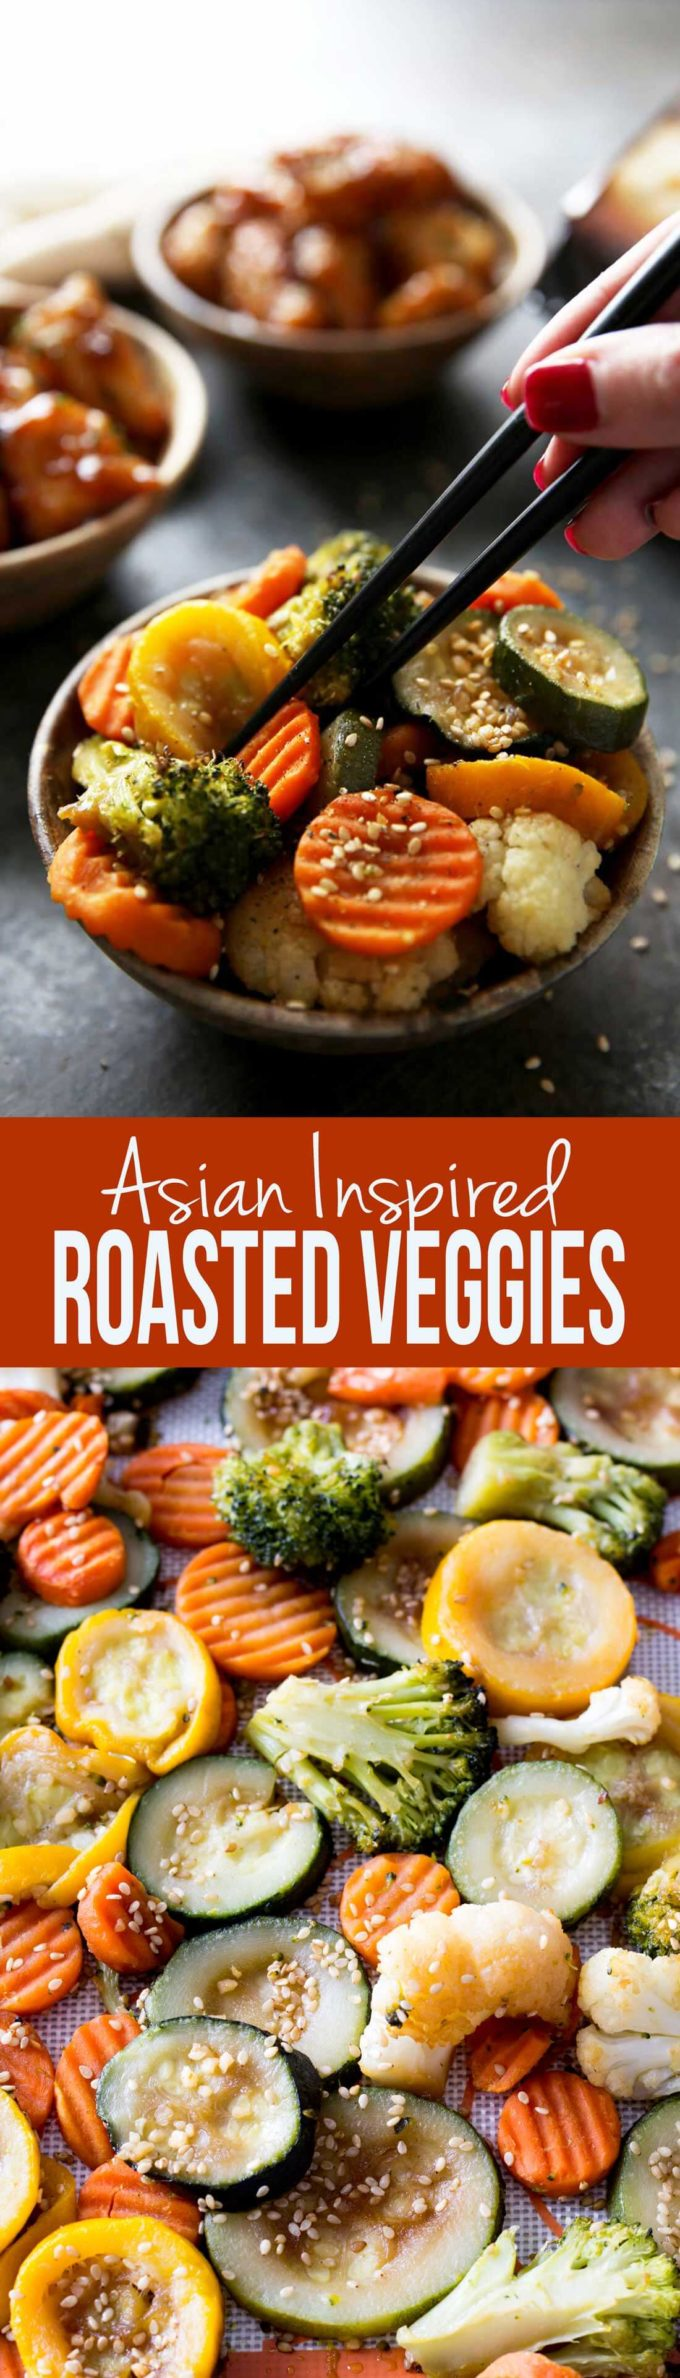 Easy asian inspired veggies roasted in the oven